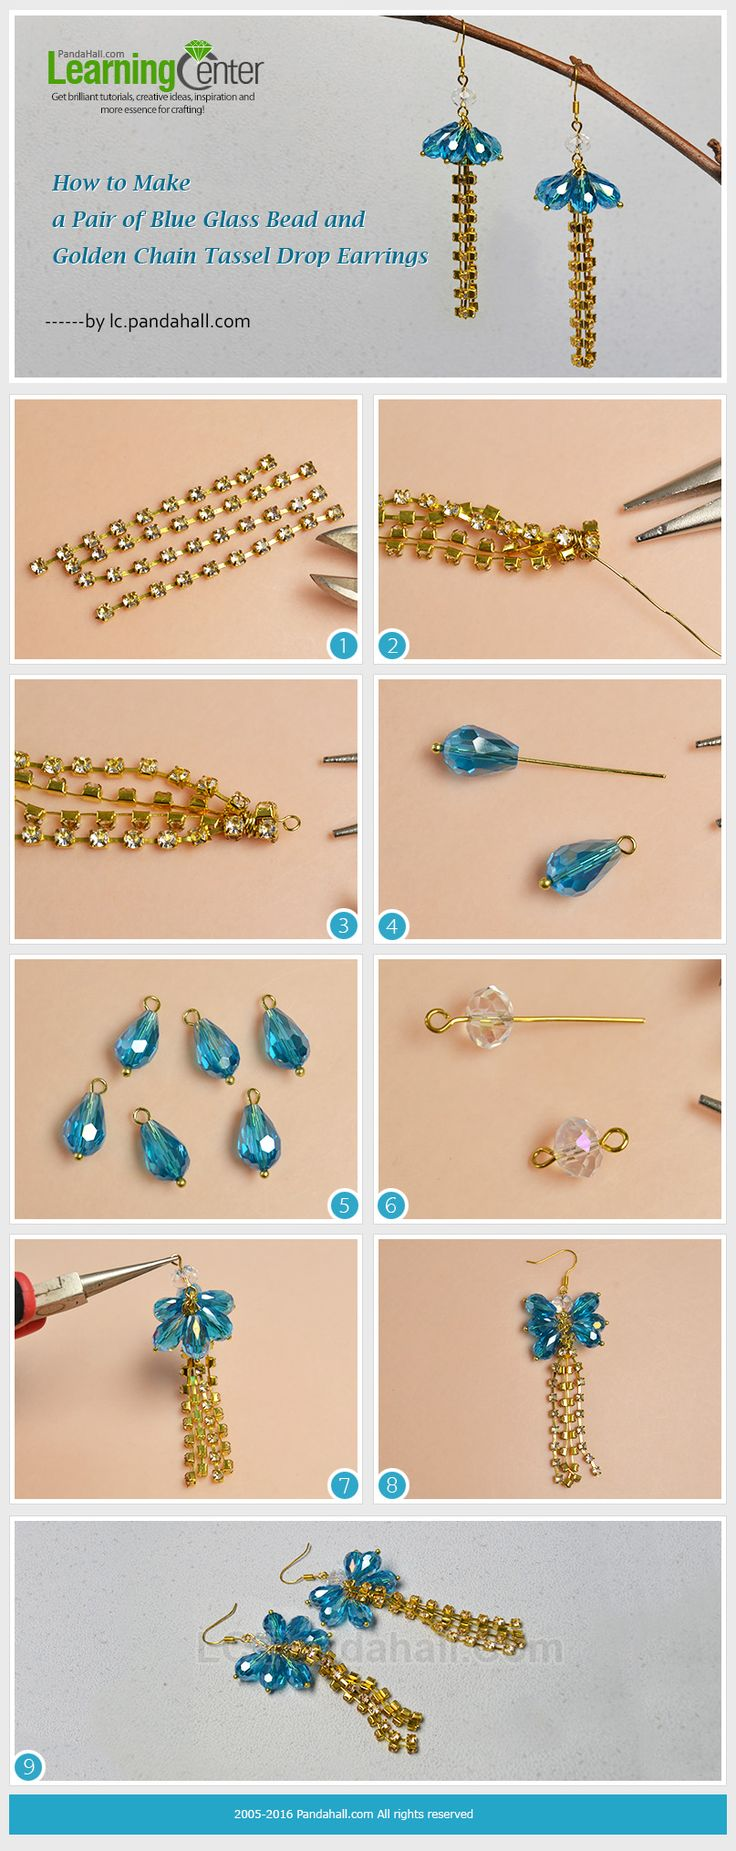 How to Make a Pair of Blue Glass Bead and Golden Chain Tassel Drop Earrings from LC.Pandahall.com